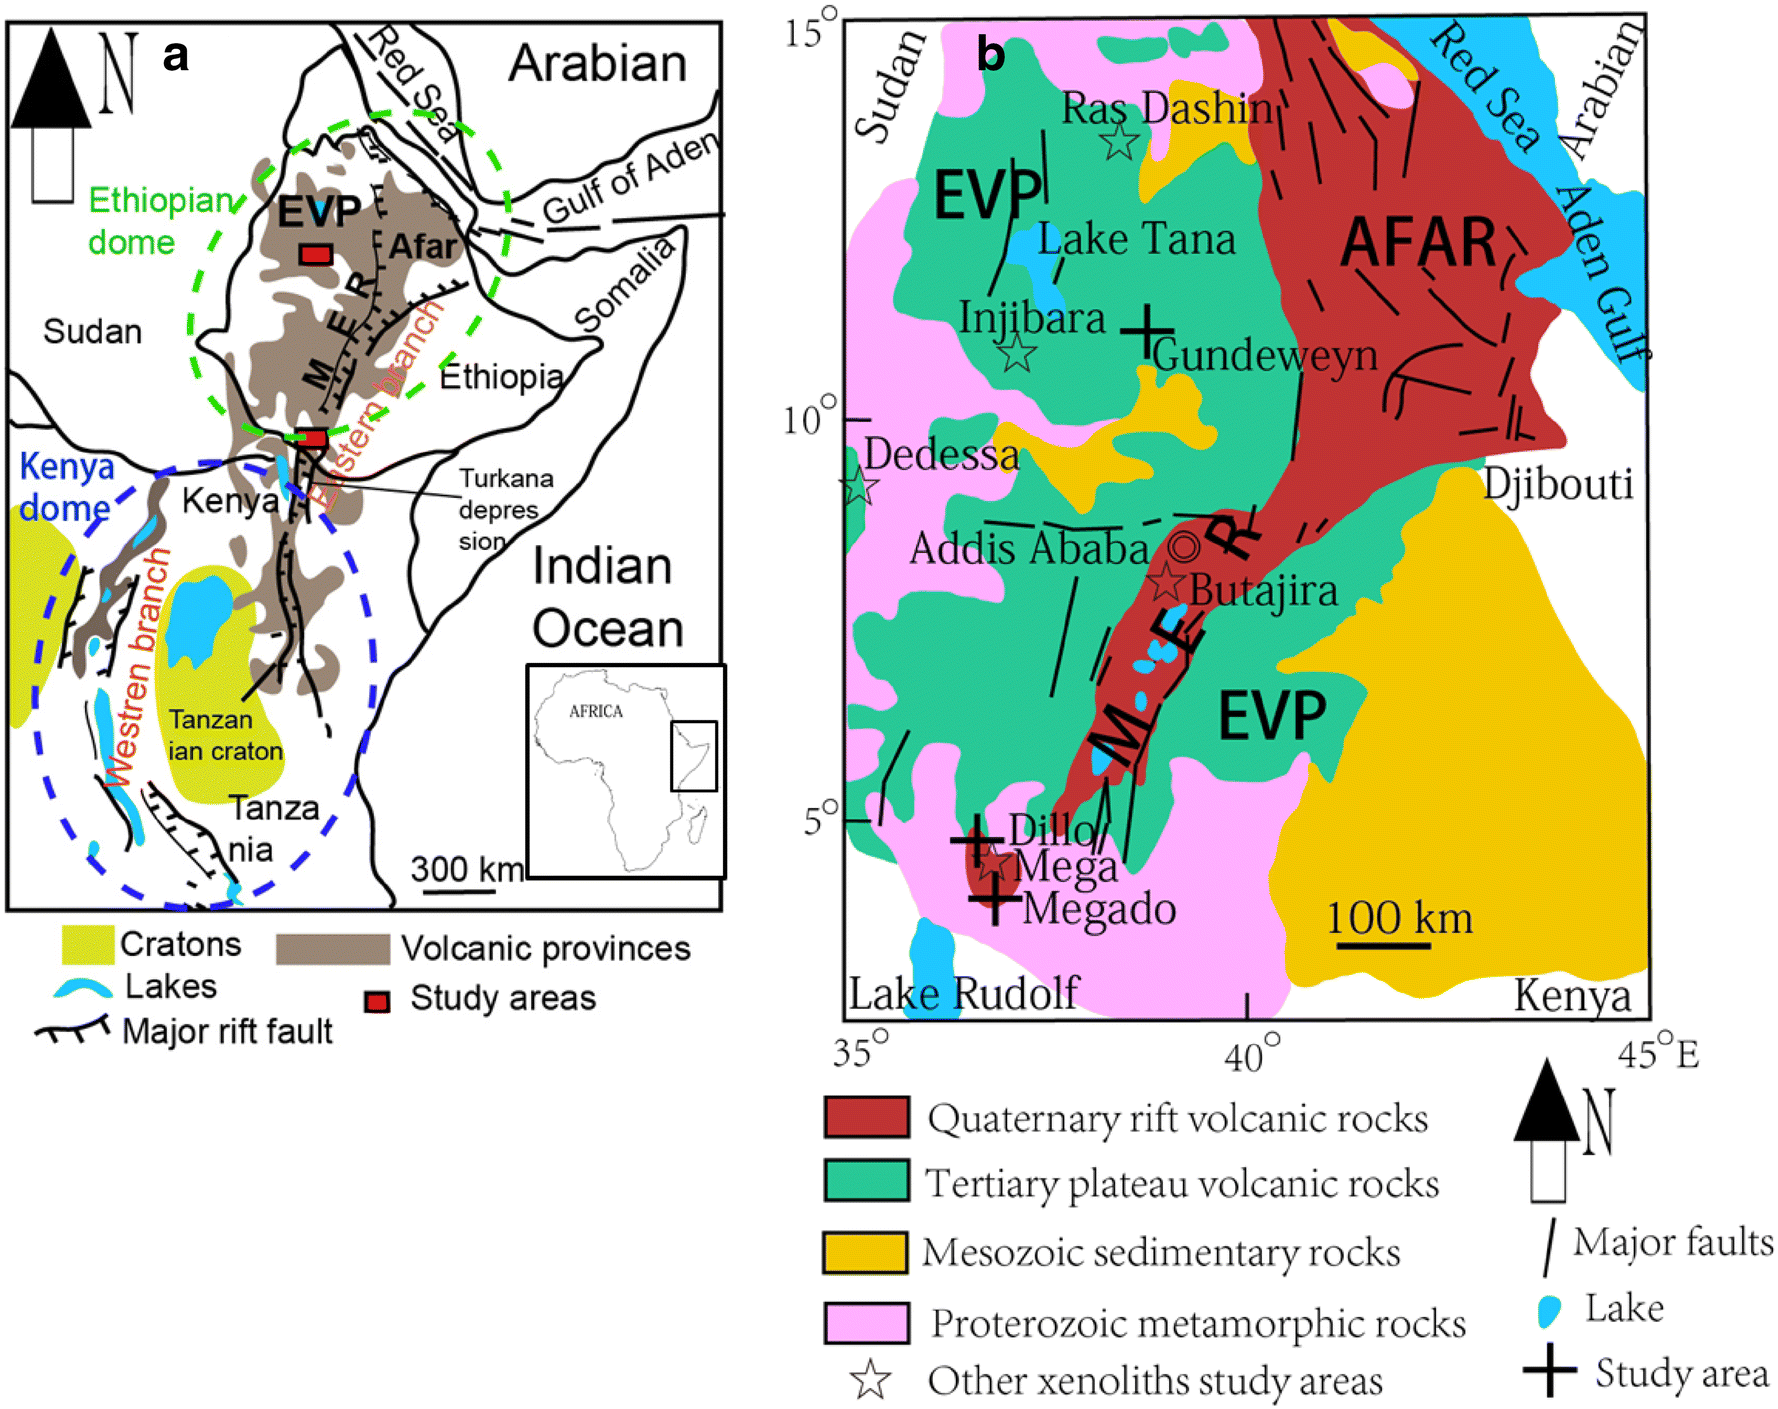 Transformation of continental lithospheric mantle beneath the East